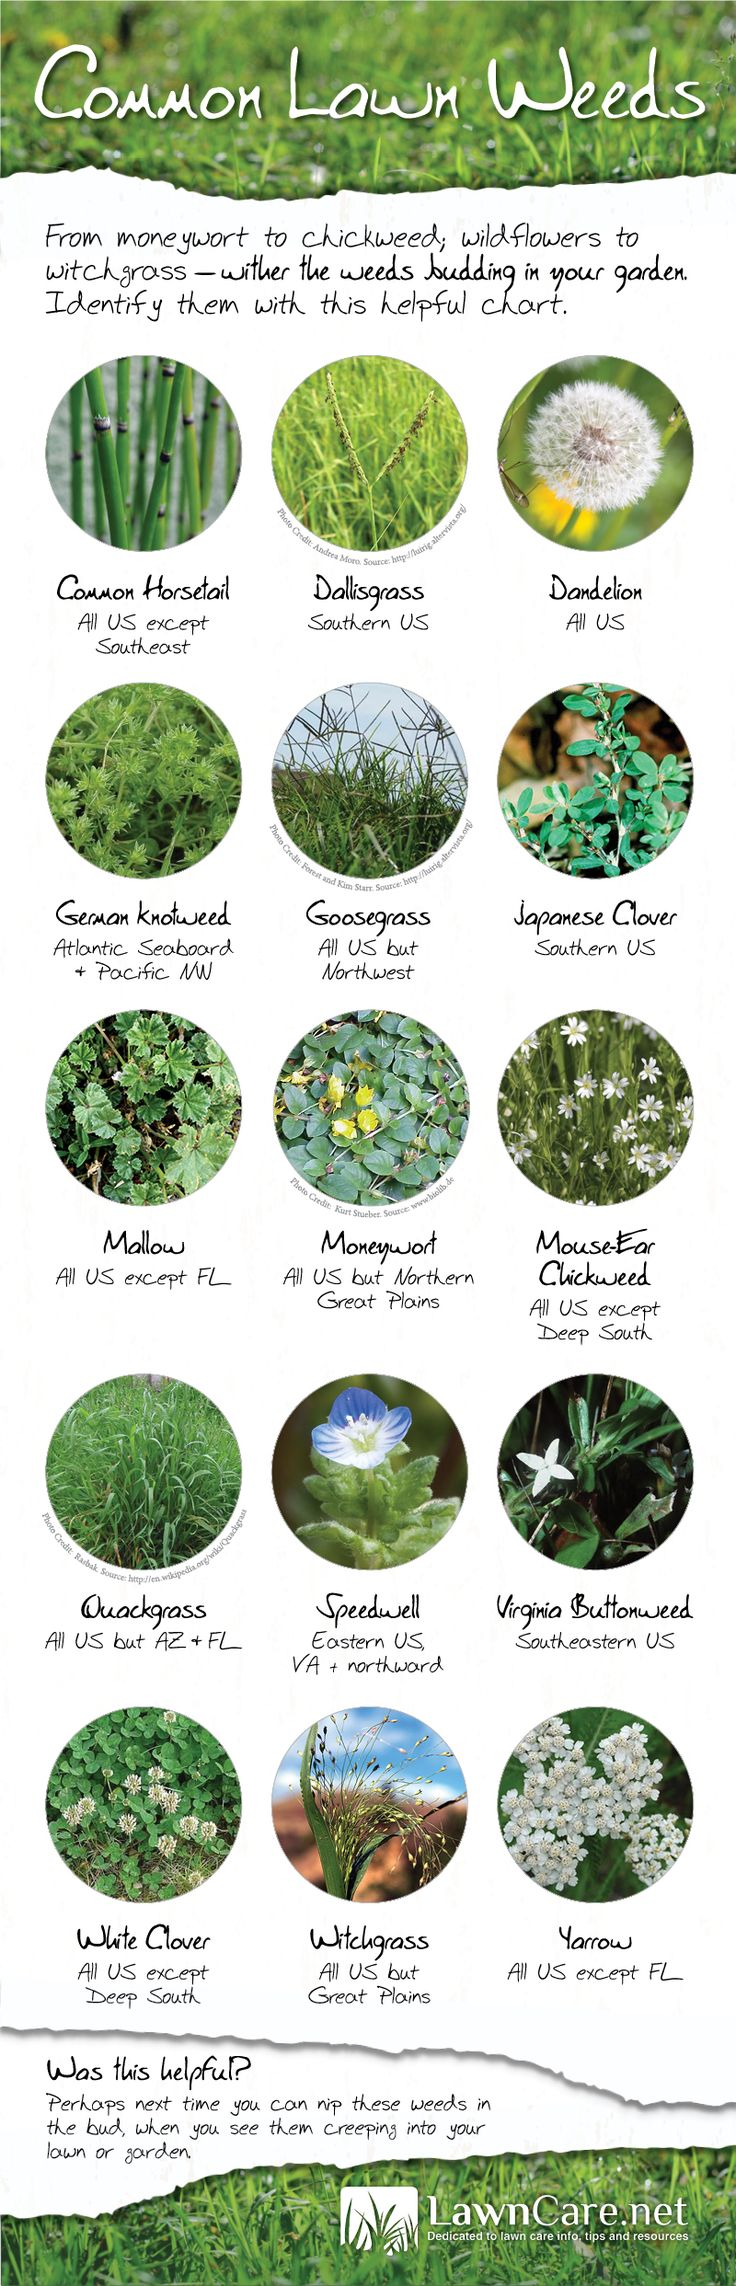 Find out what types of weeds are plaguing your lawn with this handy weed identification guide from LawnCare.net!